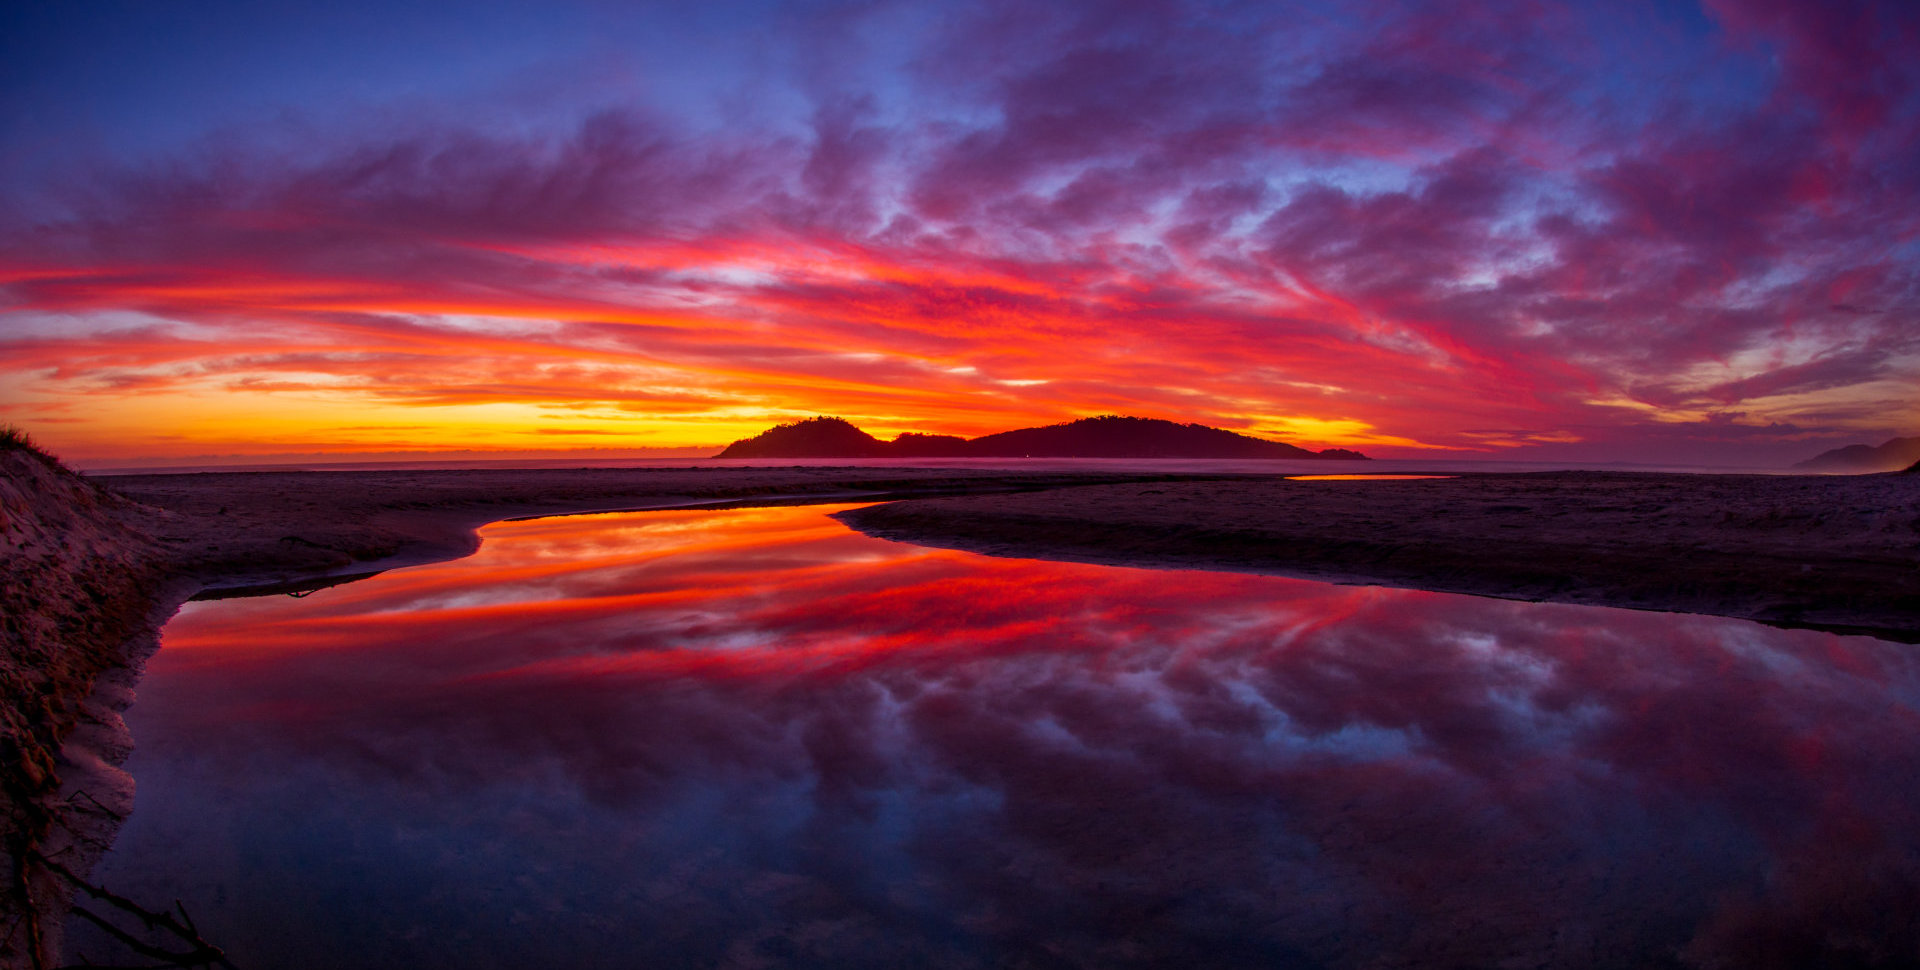 amazing sunrise with red, orange and yellow clouds and reflection on the water